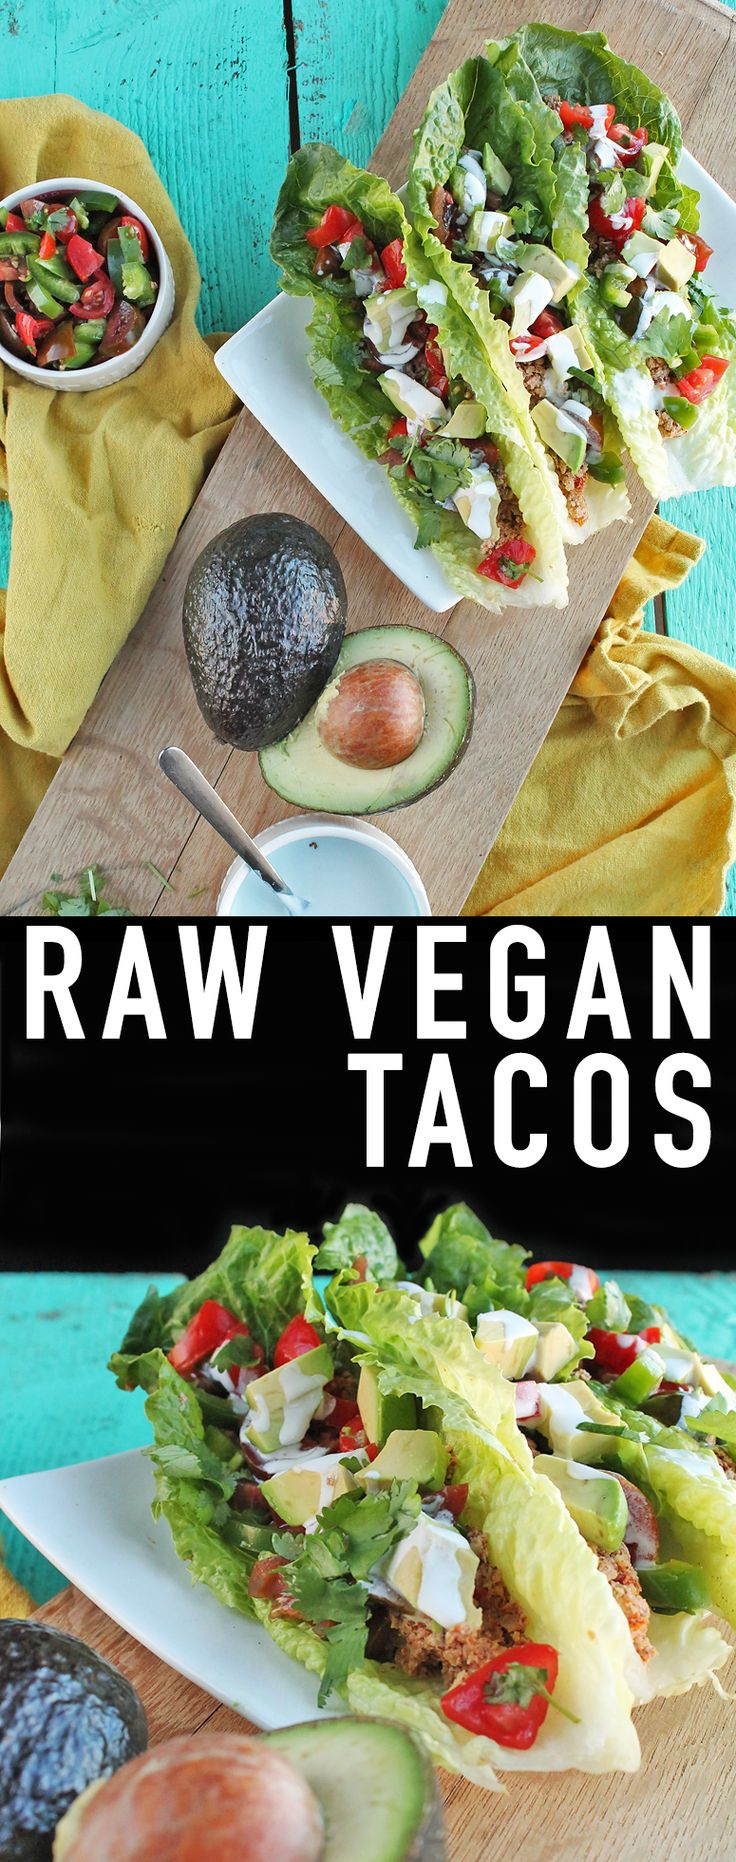 Enjoy a delicious and healthy meal of raw vegan tacos with walnut taco meat, fresh pico de gallo, and homemade cashew cream. Click the photo for the full recipe.